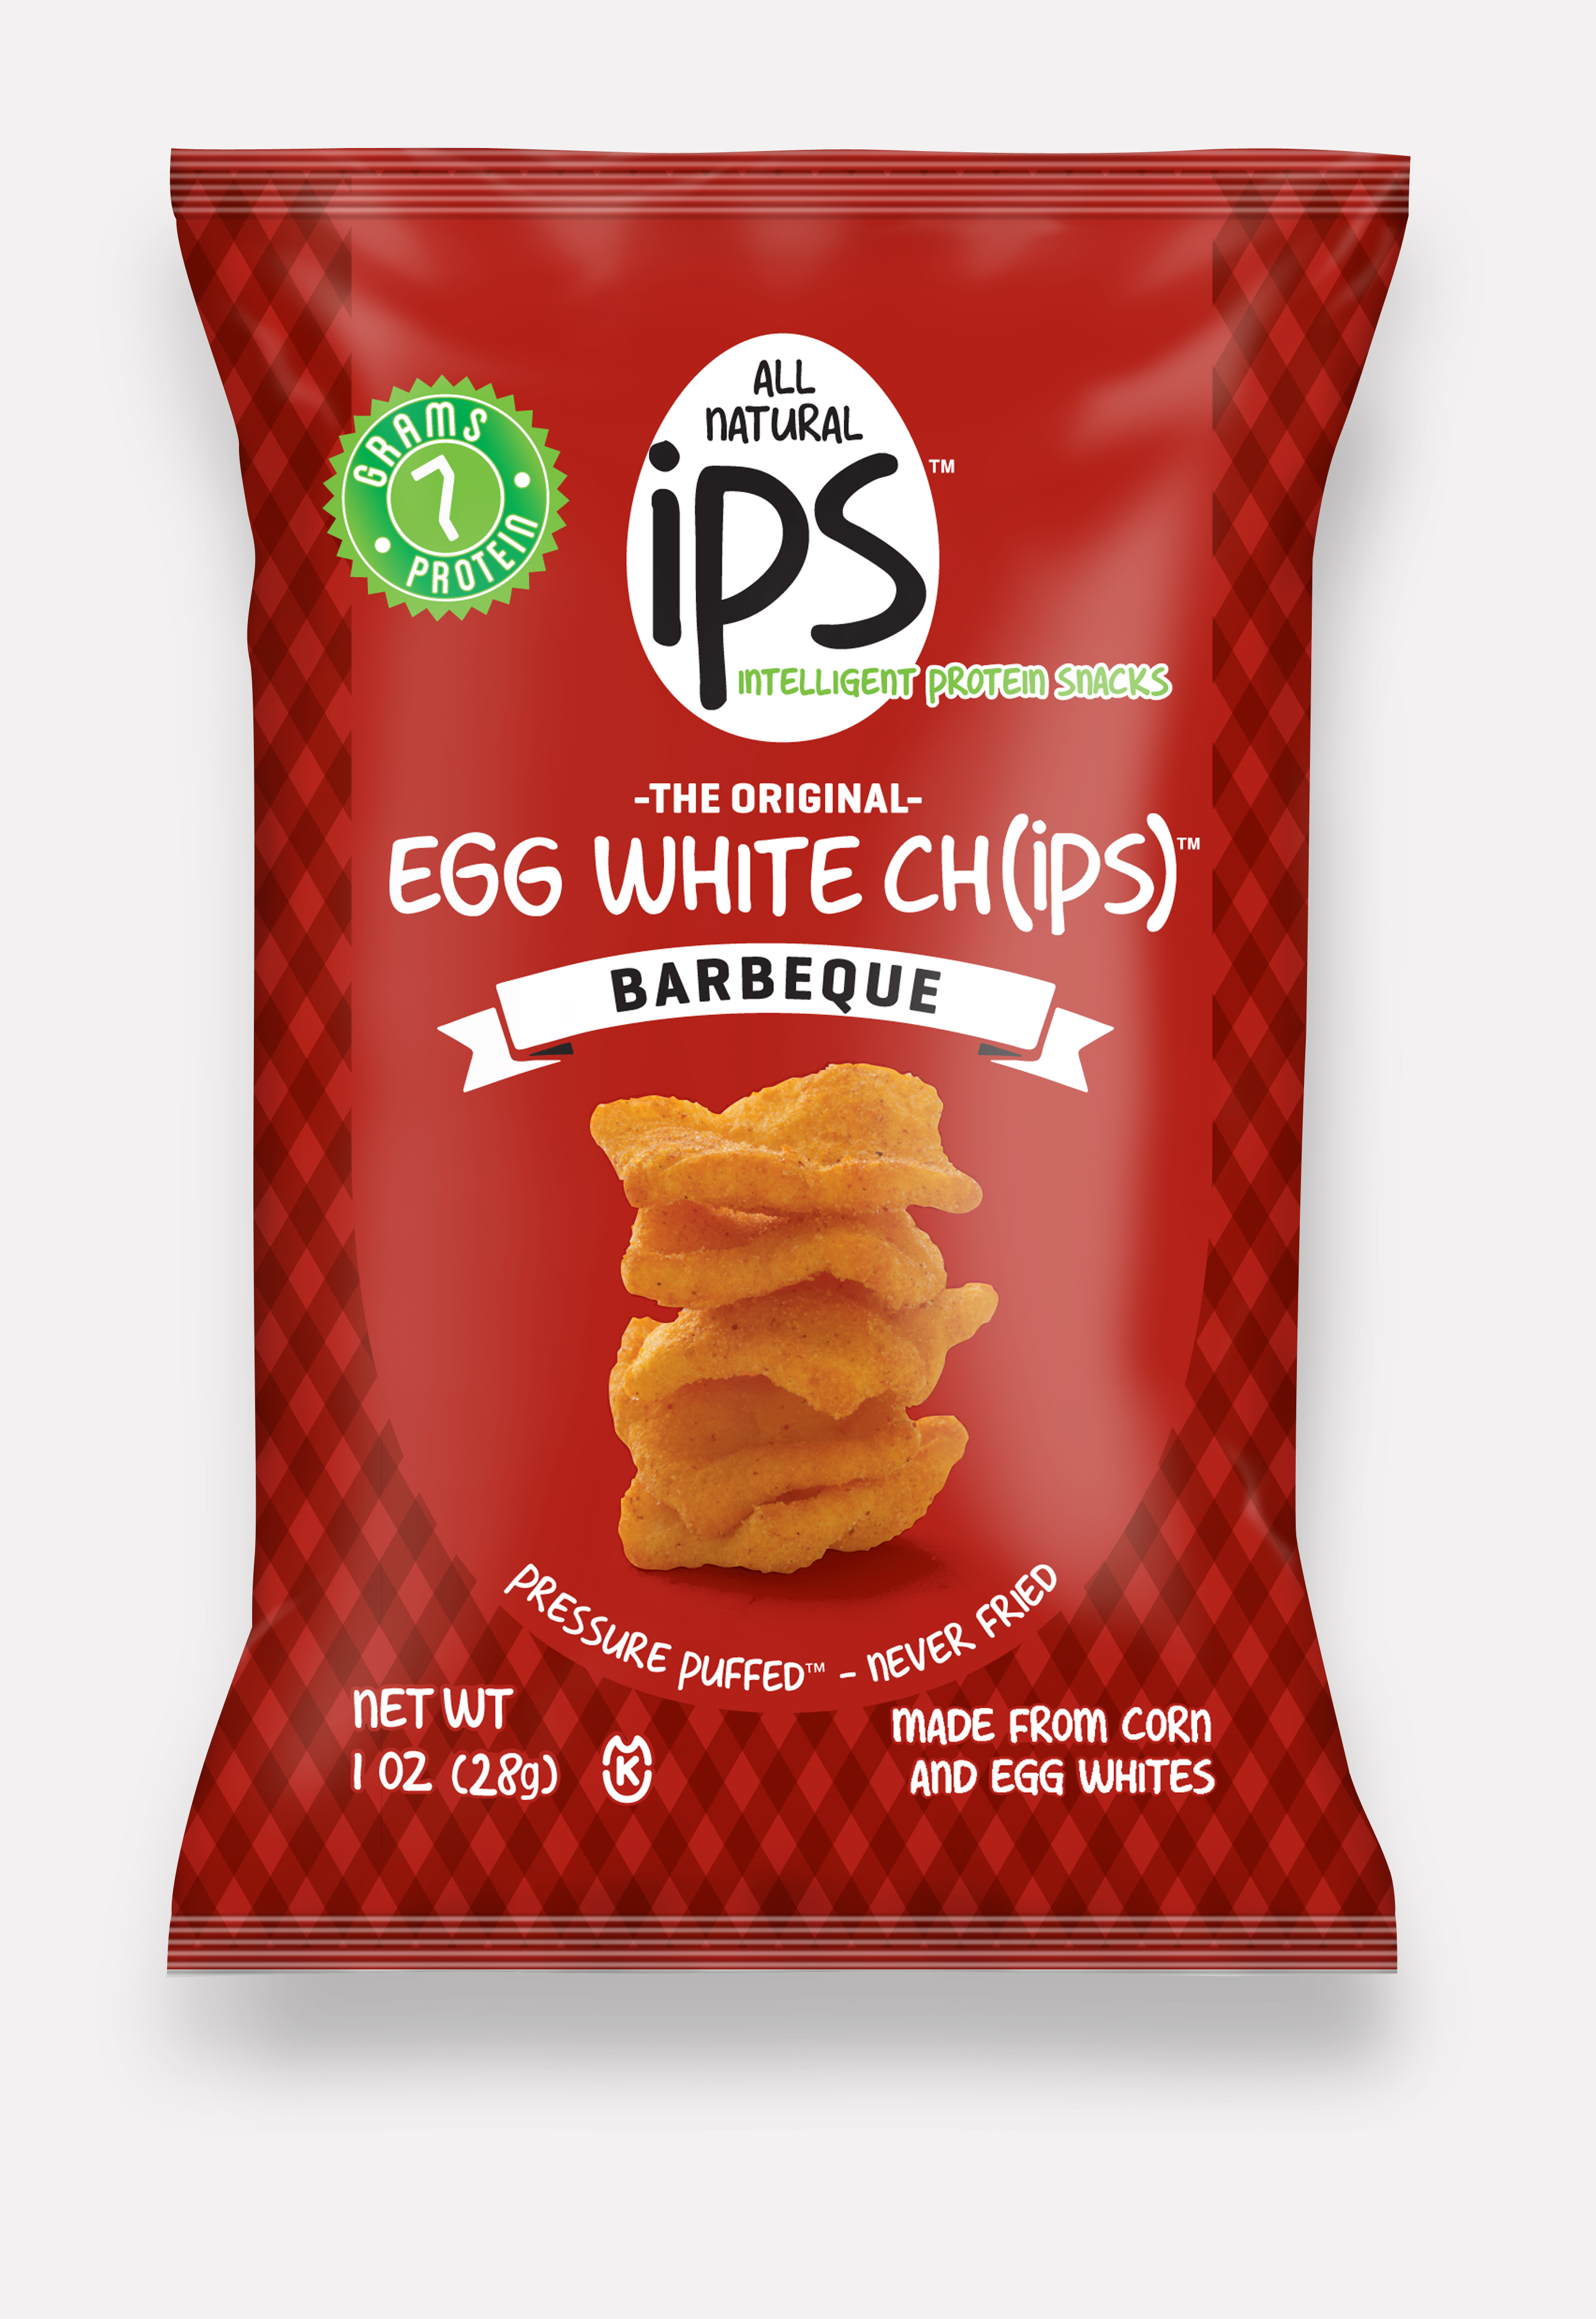 Enter to win ips All Natural Chips at SheKnows.com!